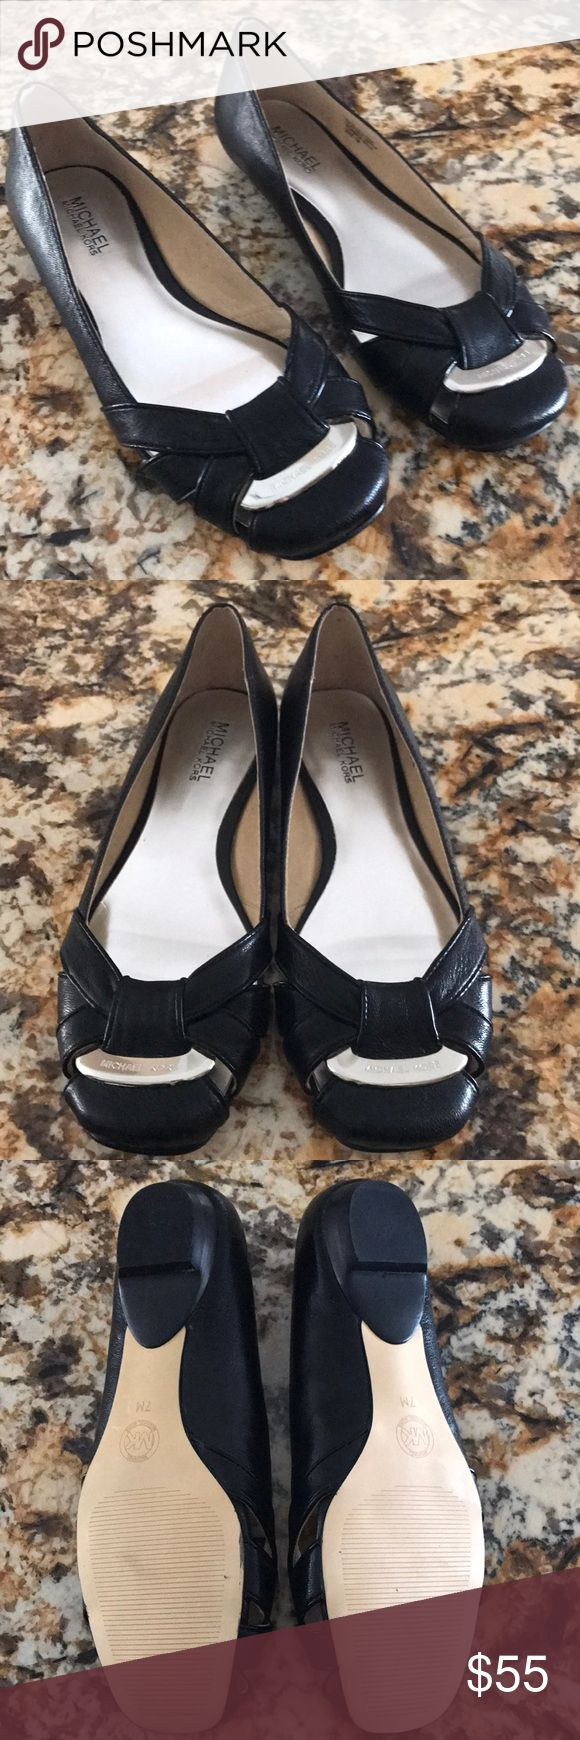 NWOT-Michael Kors Black Leather Flats💕Size 7 💕 Gorgeous Black Leather Michael Kors Flats in Size 7.They are NWOT,never worn.No box 📦.Leather Upper,Rubber Sole.Silver inserts and logo.Very stylish.💕 Reasonable Offers Welcome.Thank you 💕🌸 MICHAEL Michael Kors Shoes Flats & Loafers